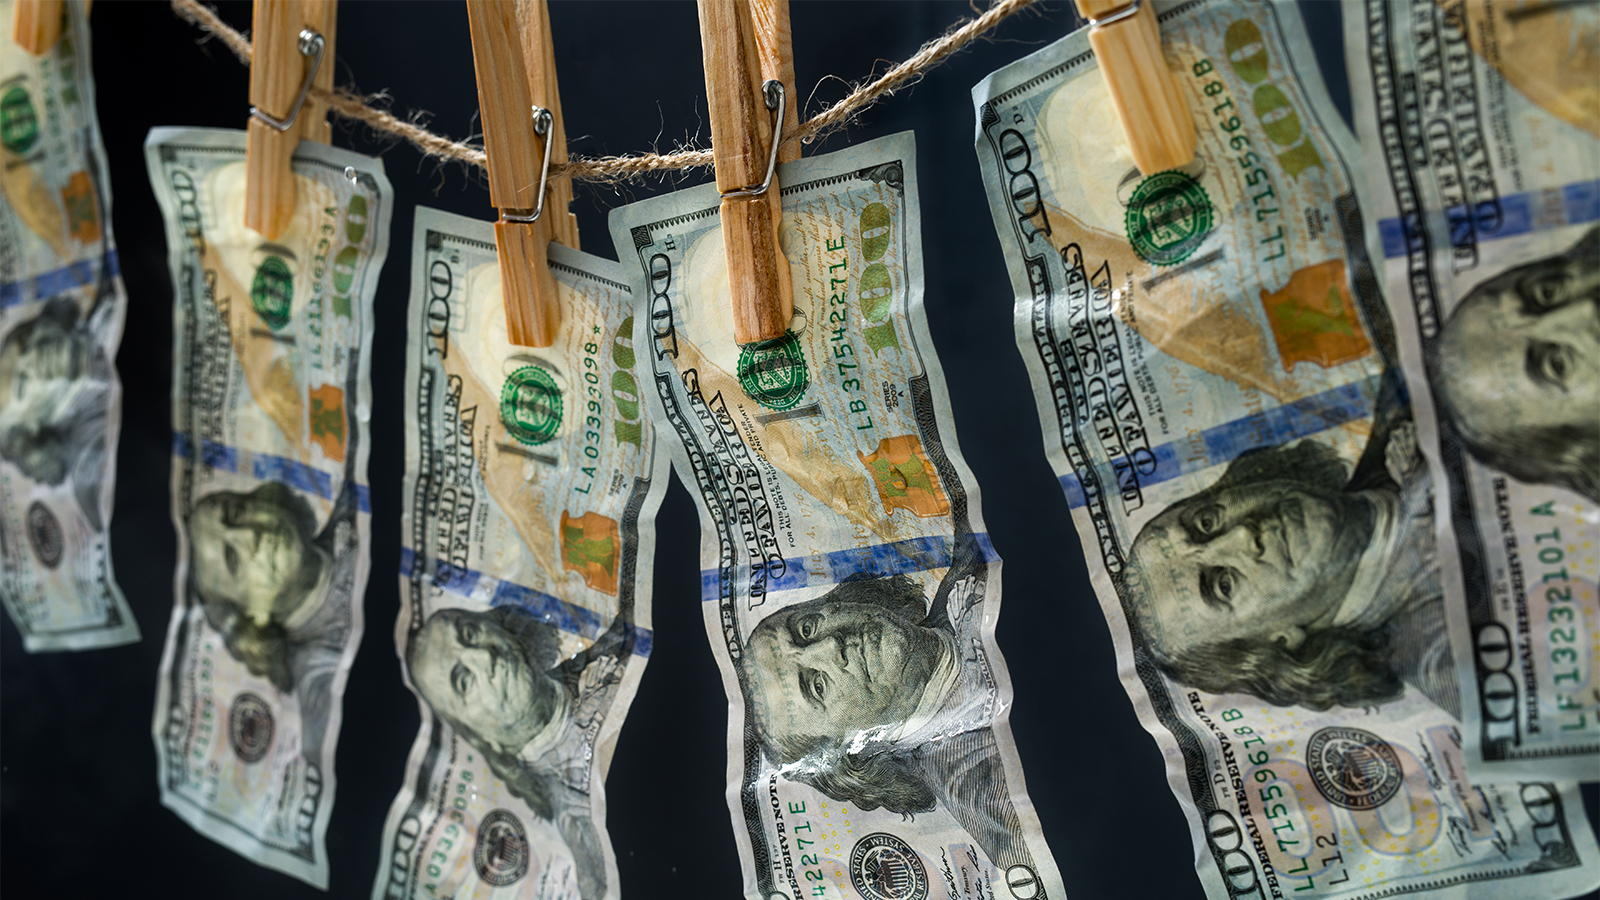 Money Laundering Basics   HowStuffWorks on can filter, can fan, can design, can go, can frame, can dimensions, can wire,